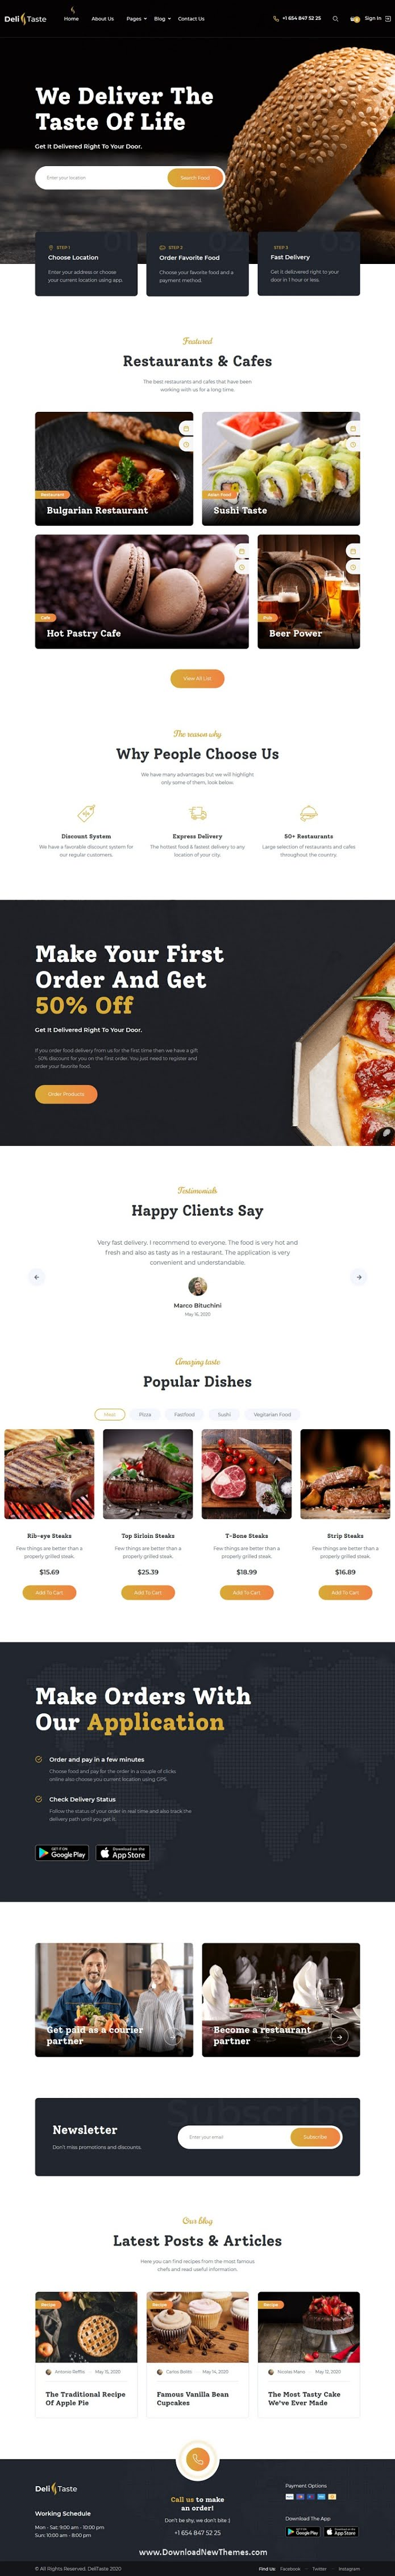 Food Delivery Restaurant Directory Template